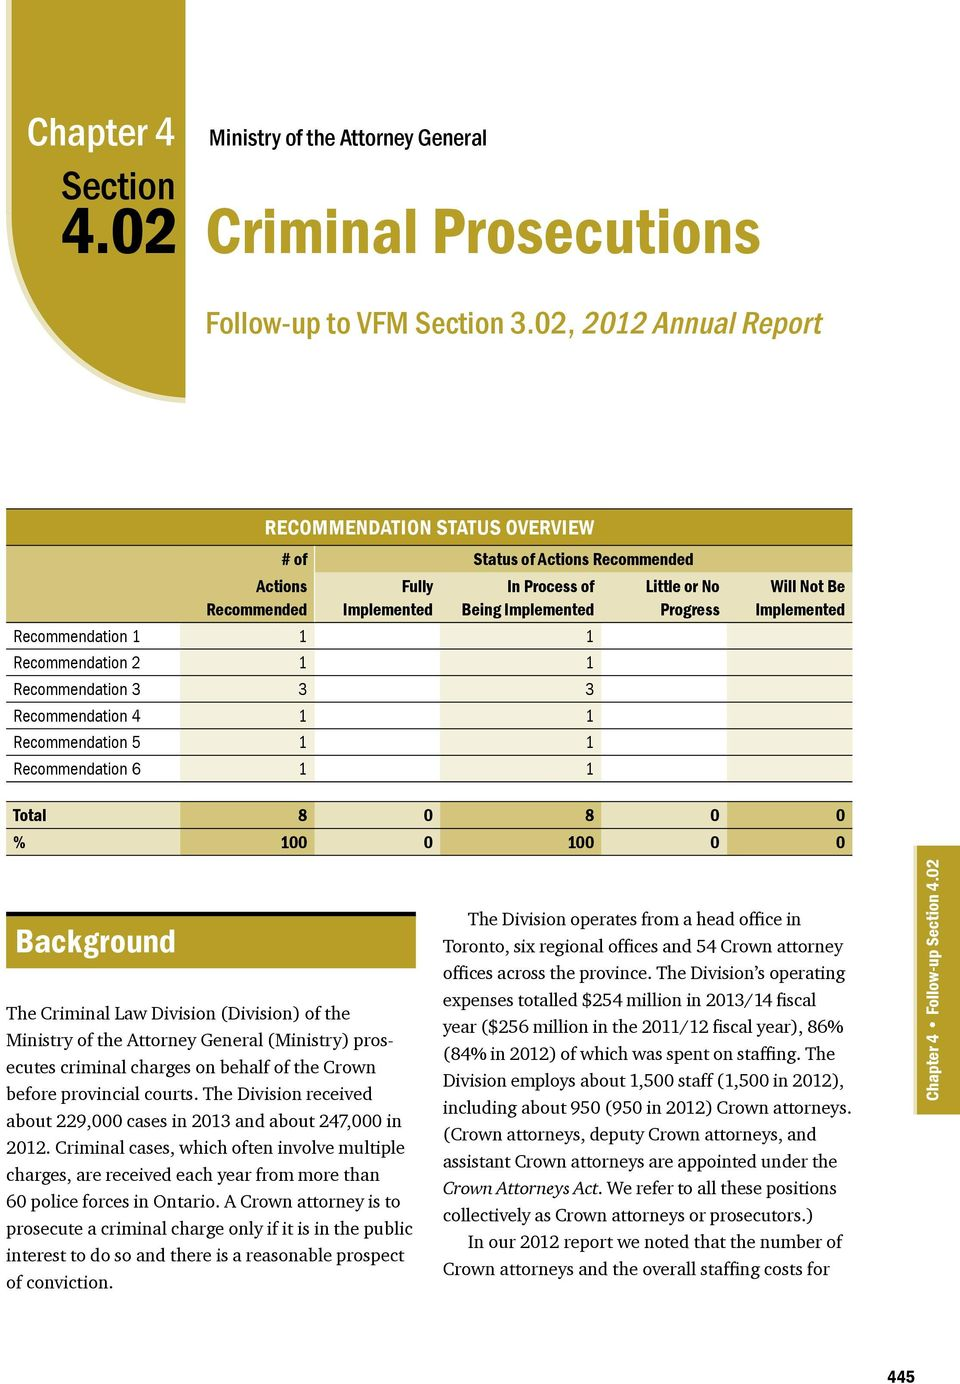 Implemented Recommendation 1 1 1 Recommendation 2 1 1 Recommendation 3 3 3 Recommendation 4 1 1 Recommendation 5 1 1 Recommendation 6 1 1 Total 8 0 8 0 0 % 100 0 100 0 0 Background The Criminal Law